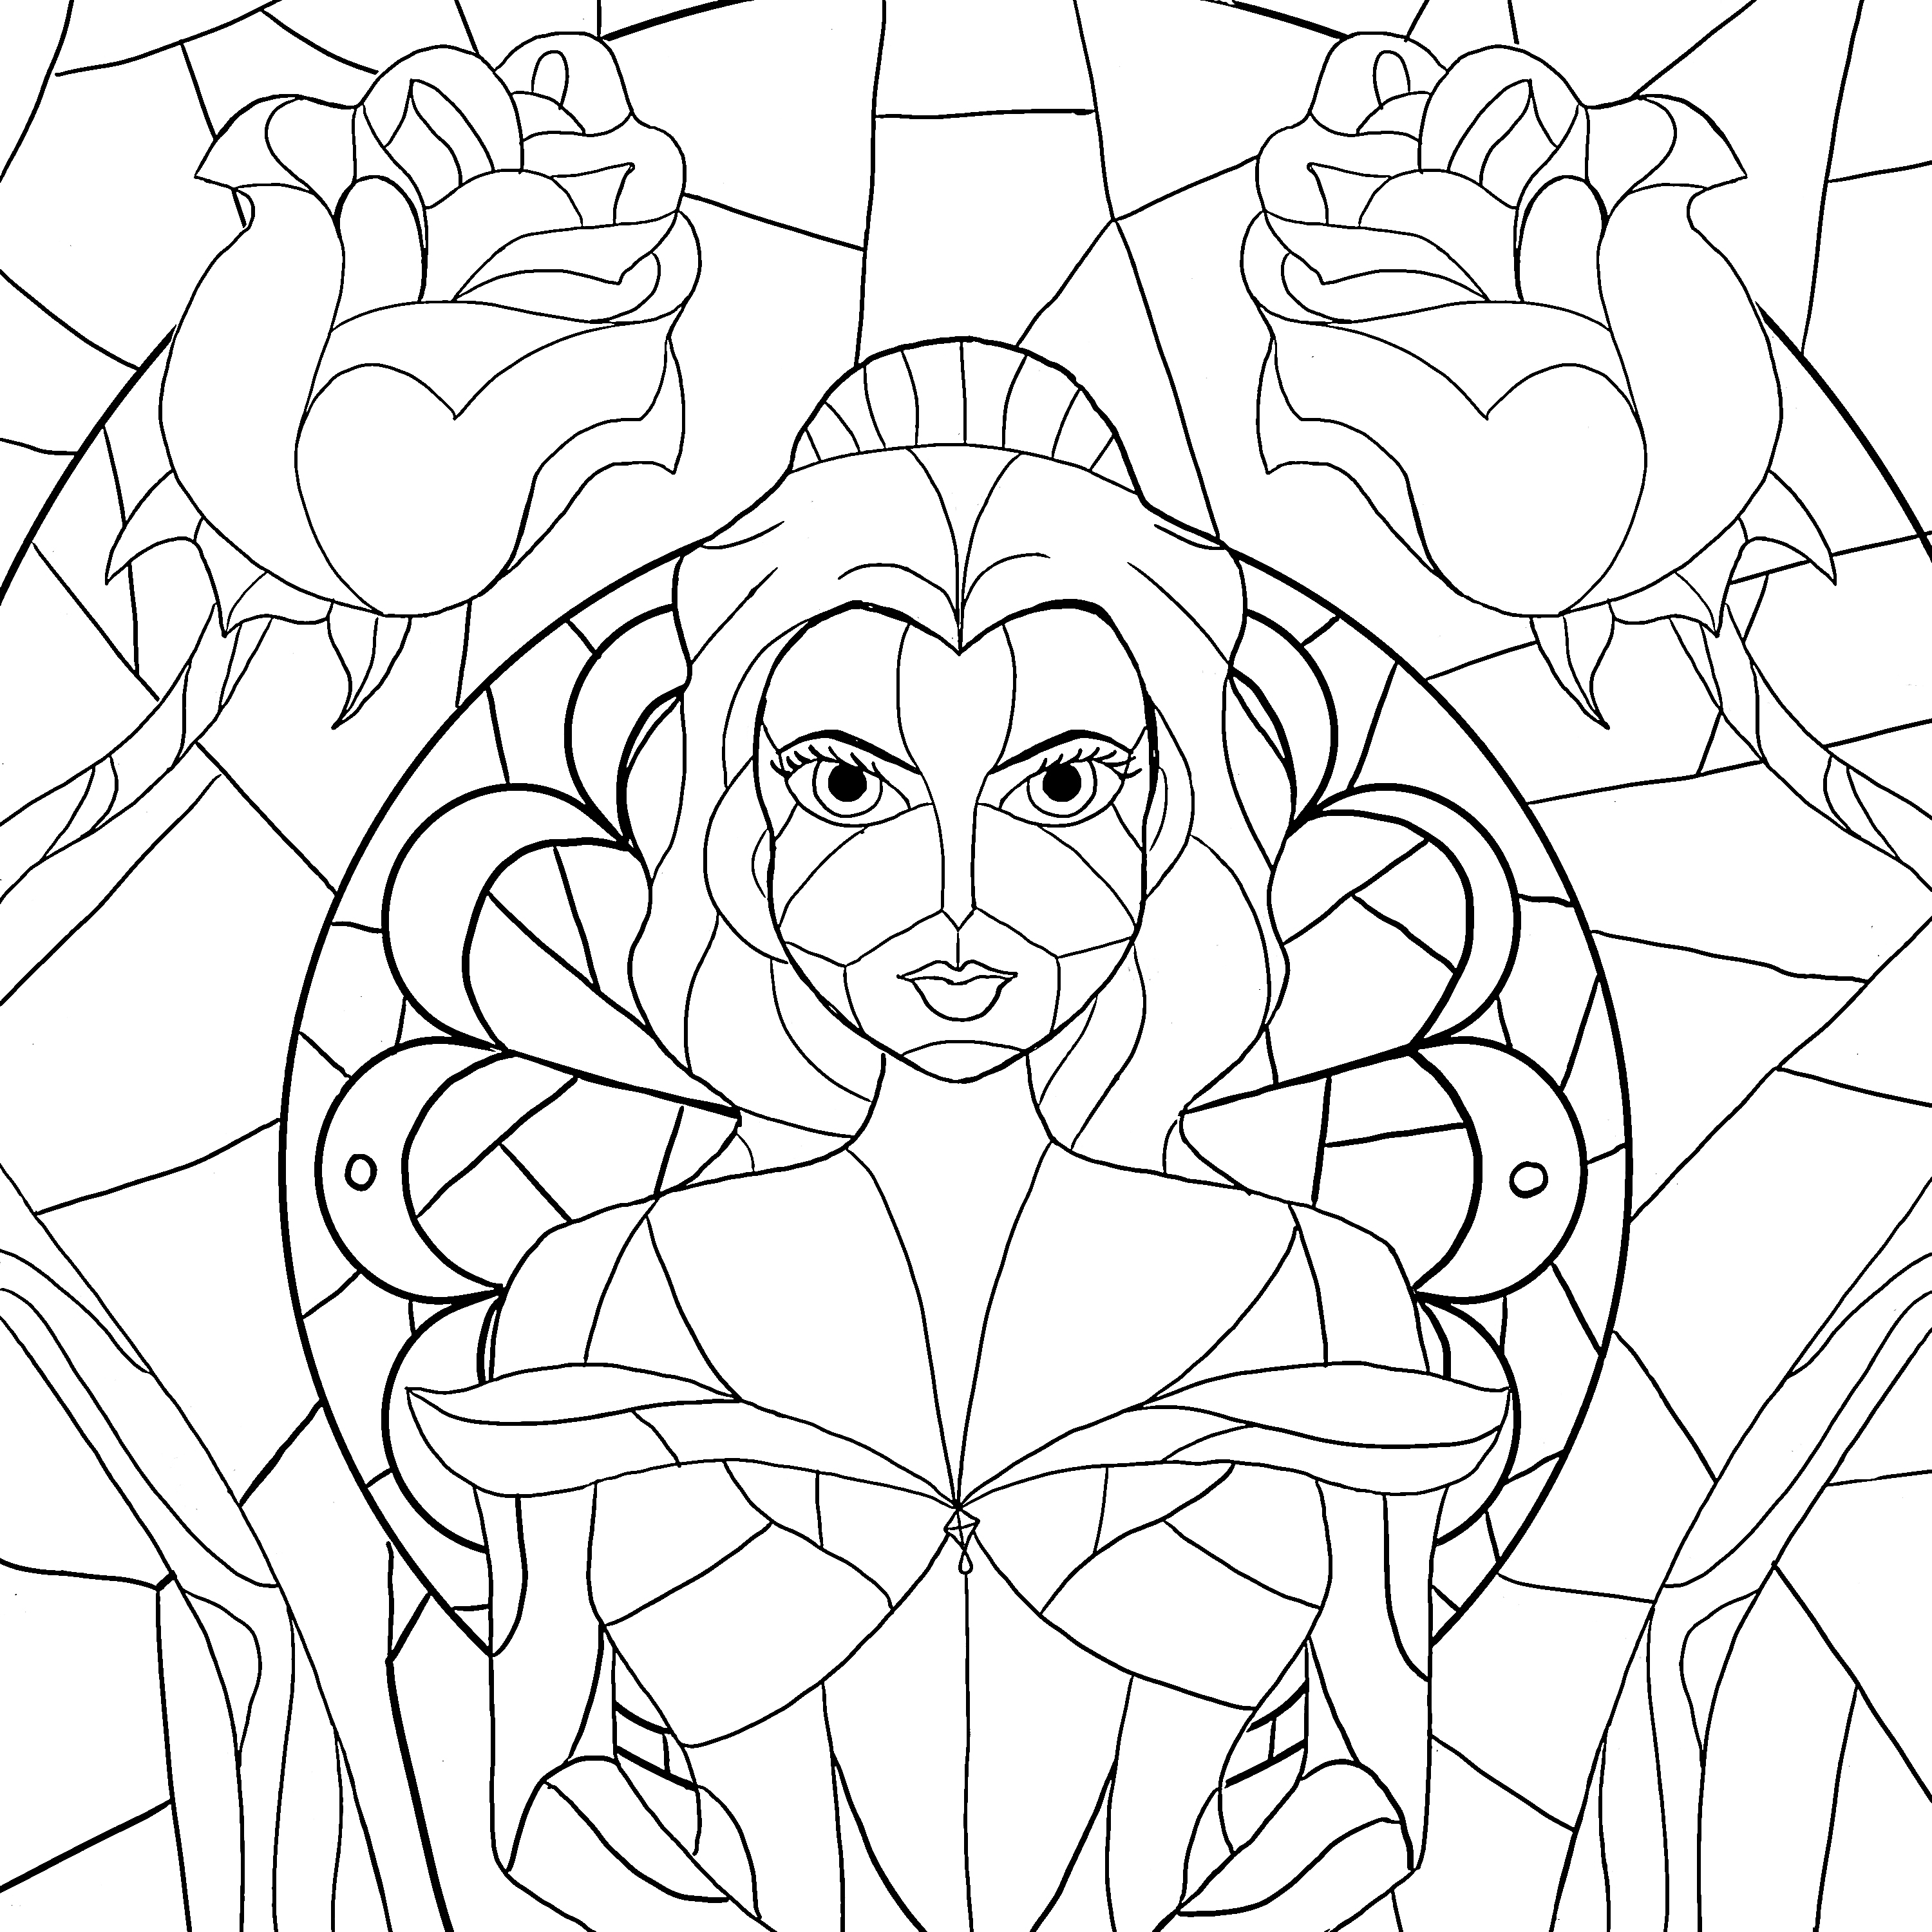 Beauty and the Beast Coloring Page – The Smarty Scoop